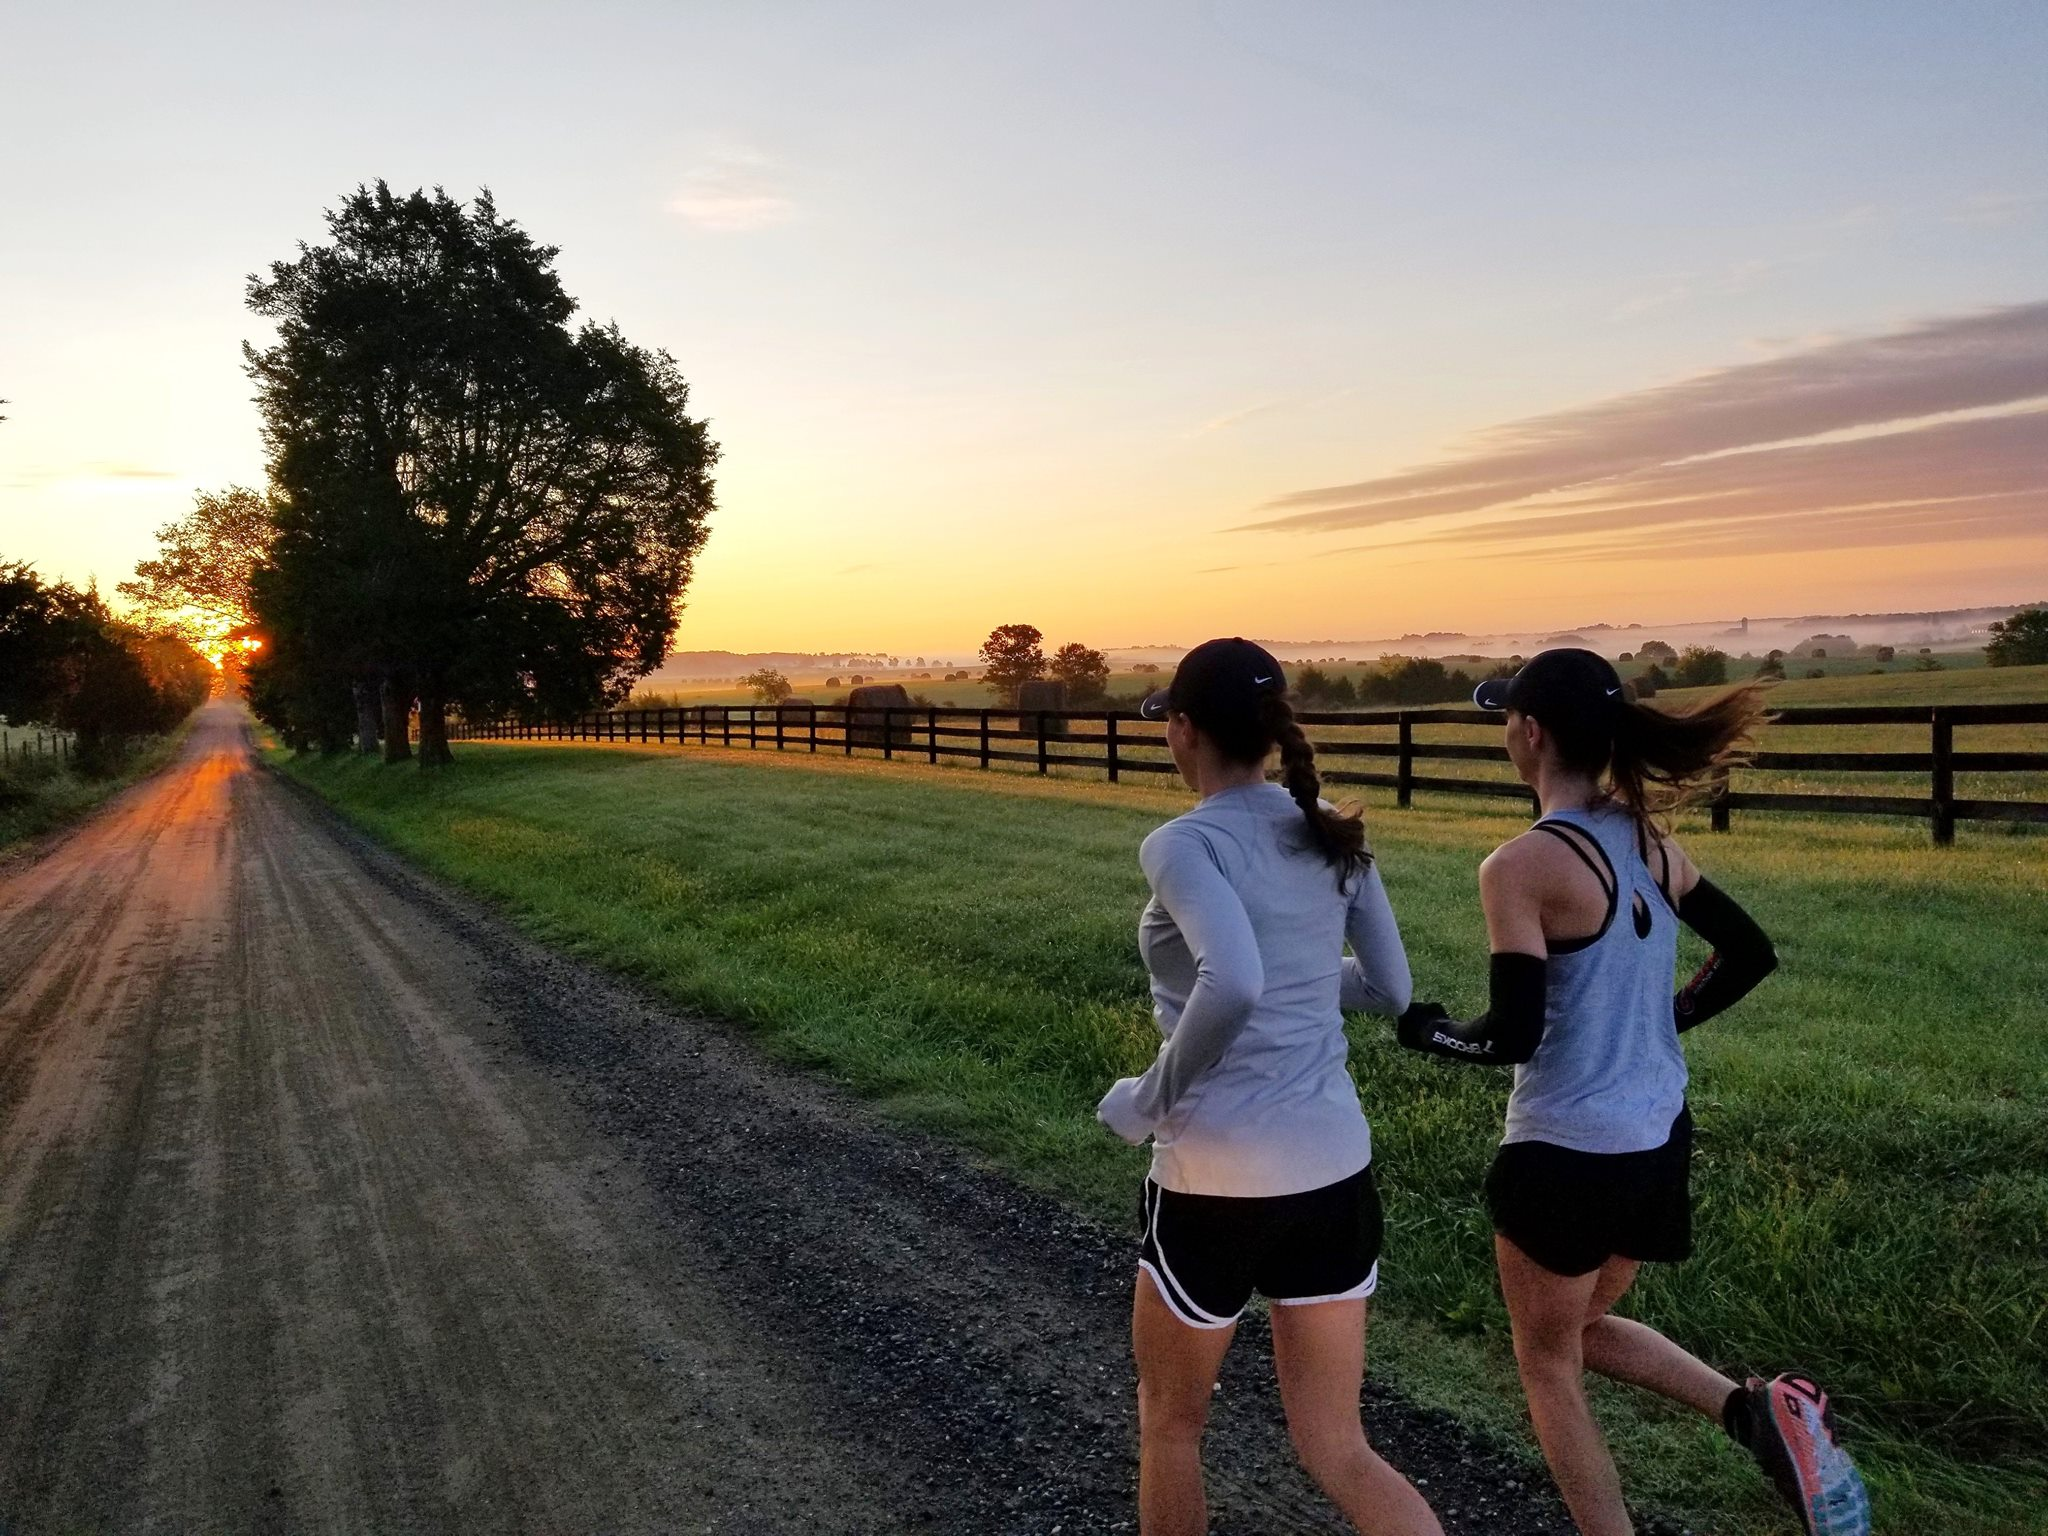 Four-day, three night getaway to reset, refocus, & rev up your running - Read below to see all that's included in this incredible weekend in the Blue Ridge,as well as a tentative itinerary